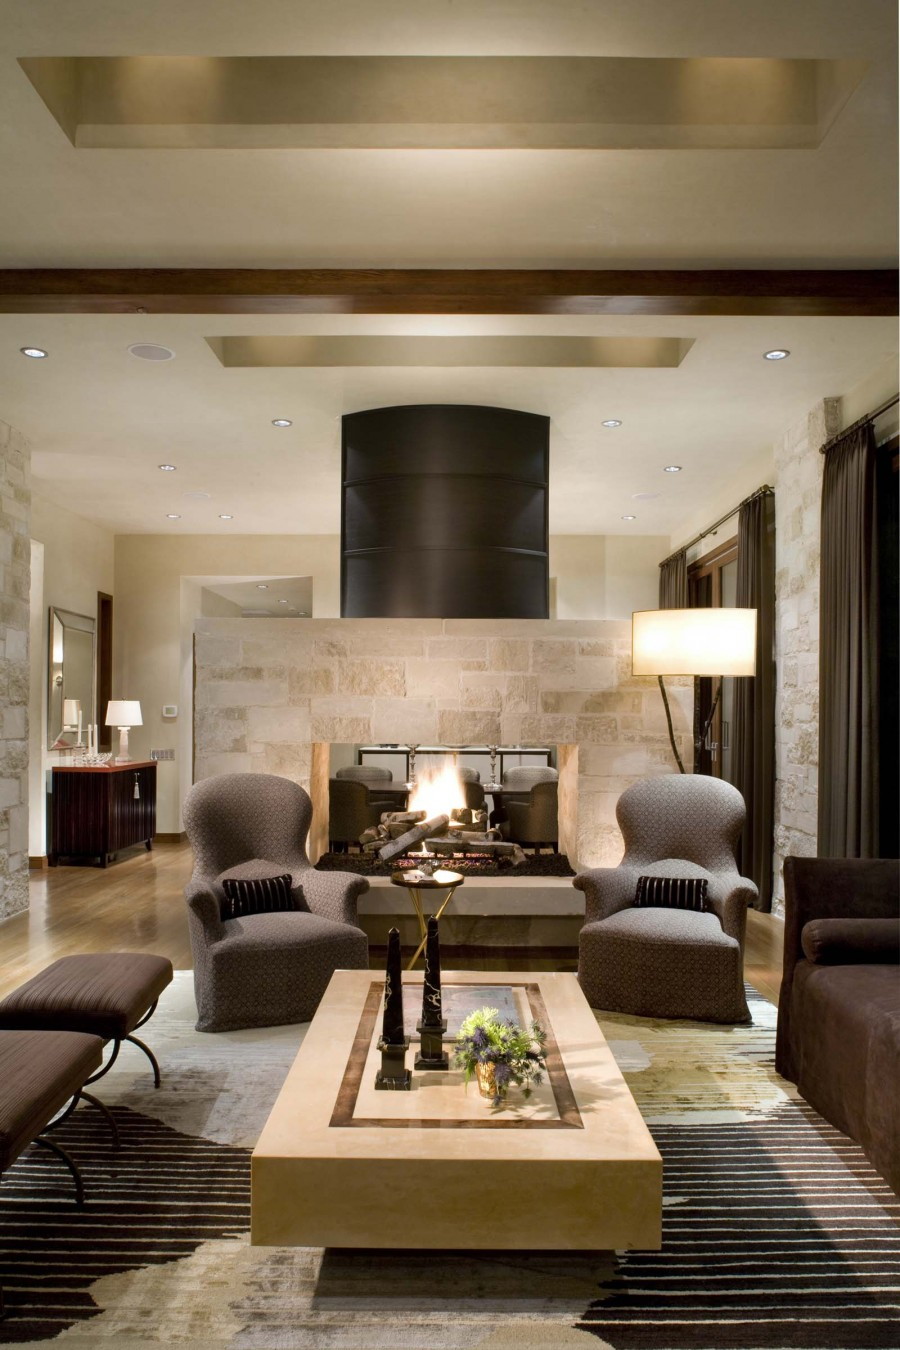 16 Fabulous Earth Tones Living Room Designs  Decoholic. Living Room With Fireplace Color Ideas. Luxury Contemporary Living Room Furniture. Living Room Deals Offers. Ceramic Canisters Sets For The Kitchen. Contemporary Living Room Coffee Tables. English Country Decorating Ideas Living Room. The Living Room French. Images Of Contemporary Living Room